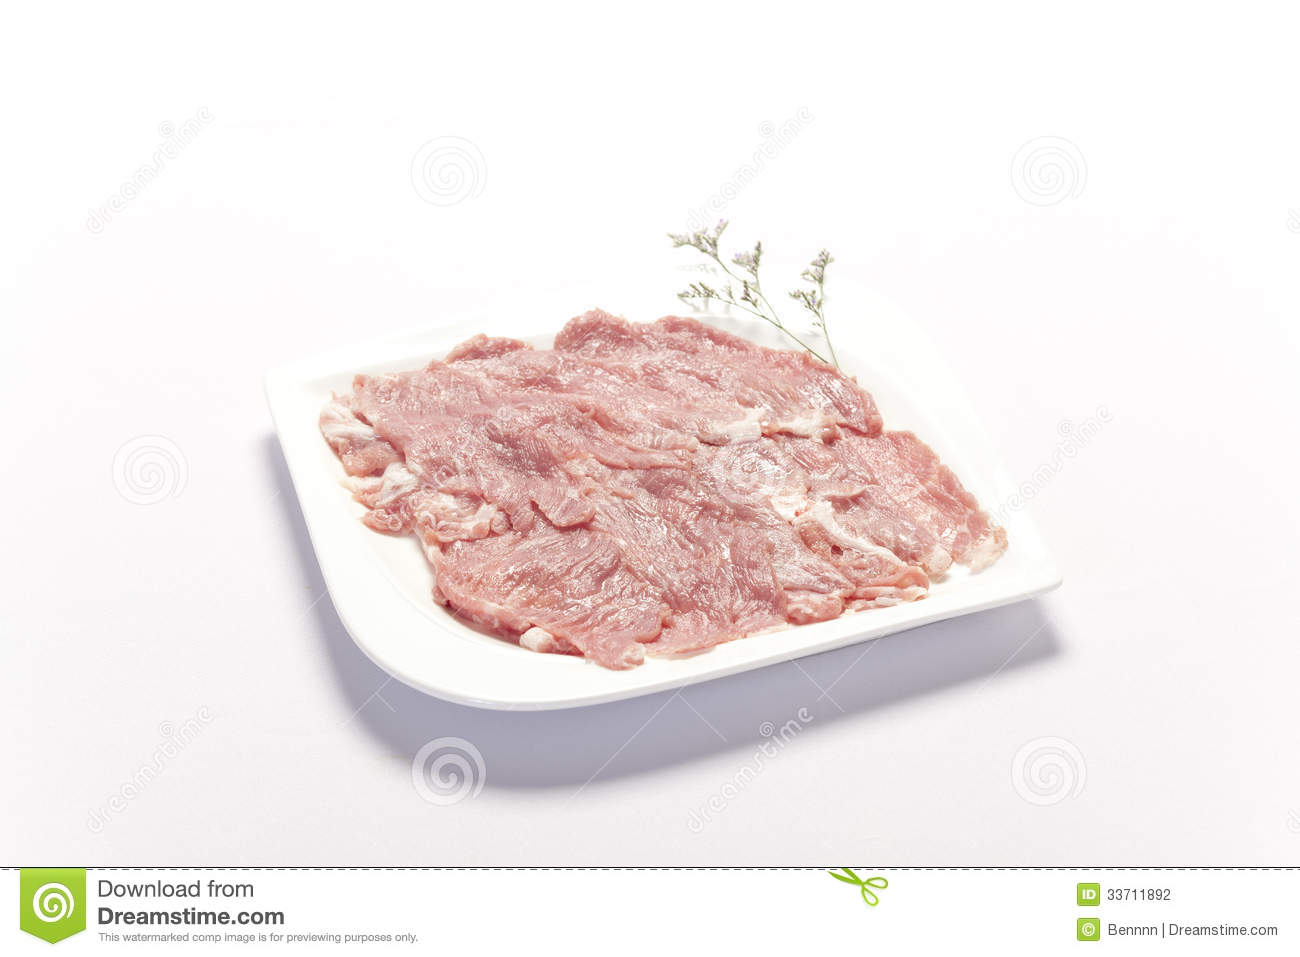 how to cook raw beef